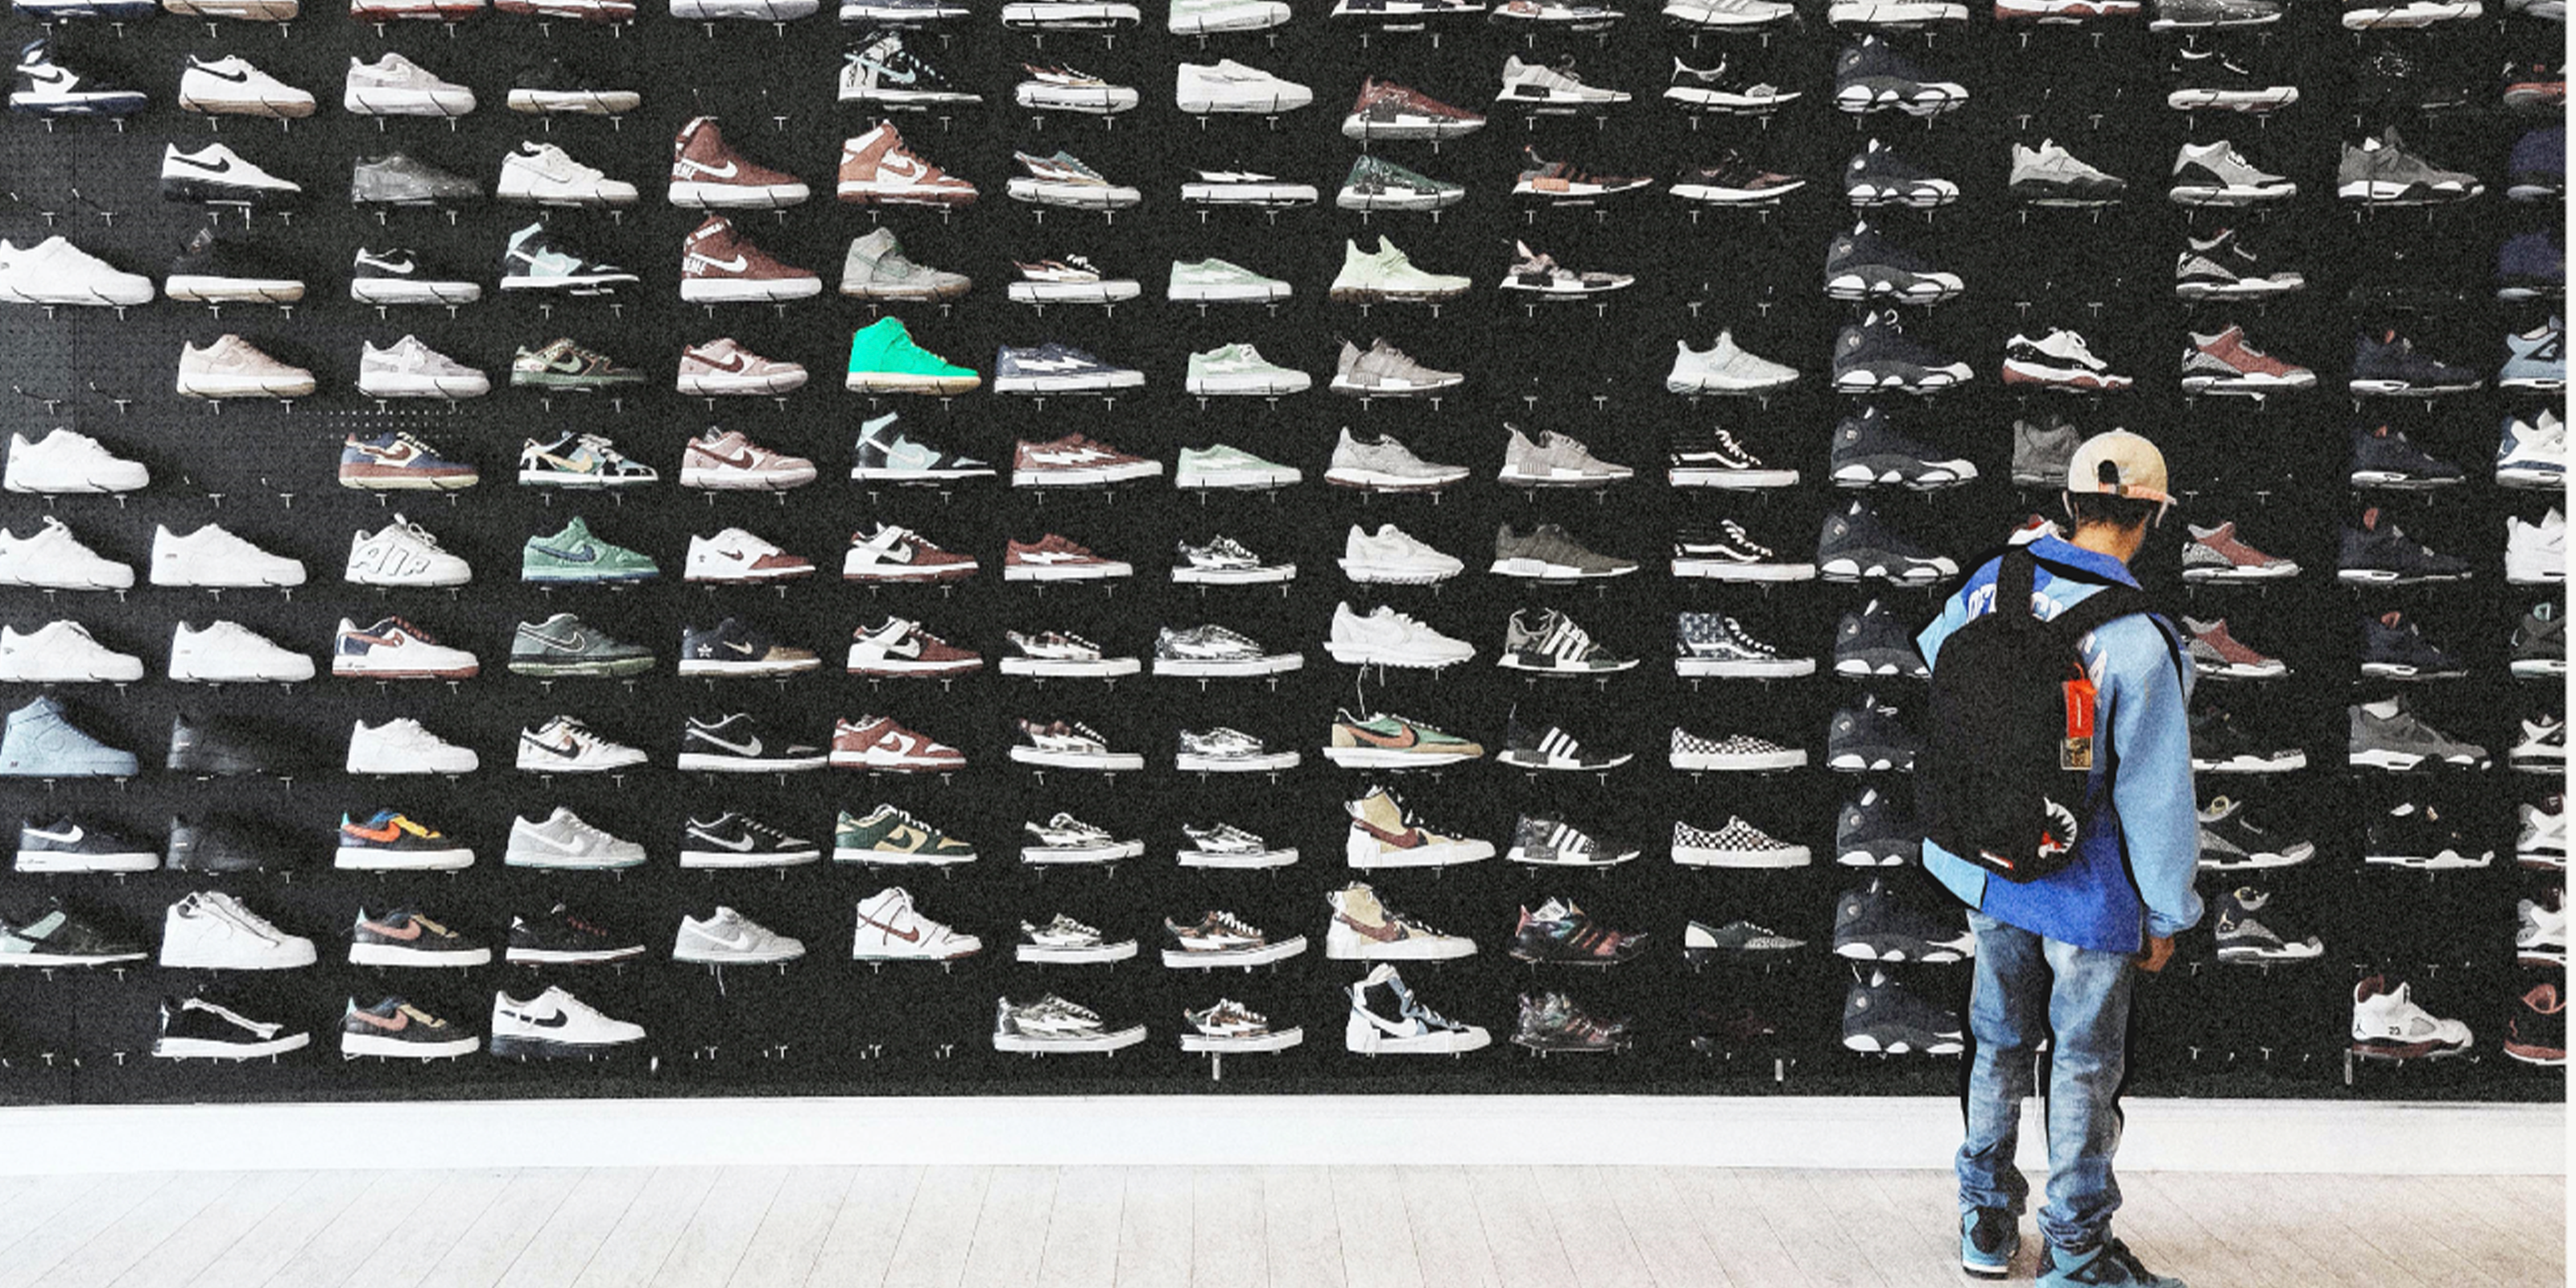 Sneaker brands: How to Build Brand Awareness proquo ai